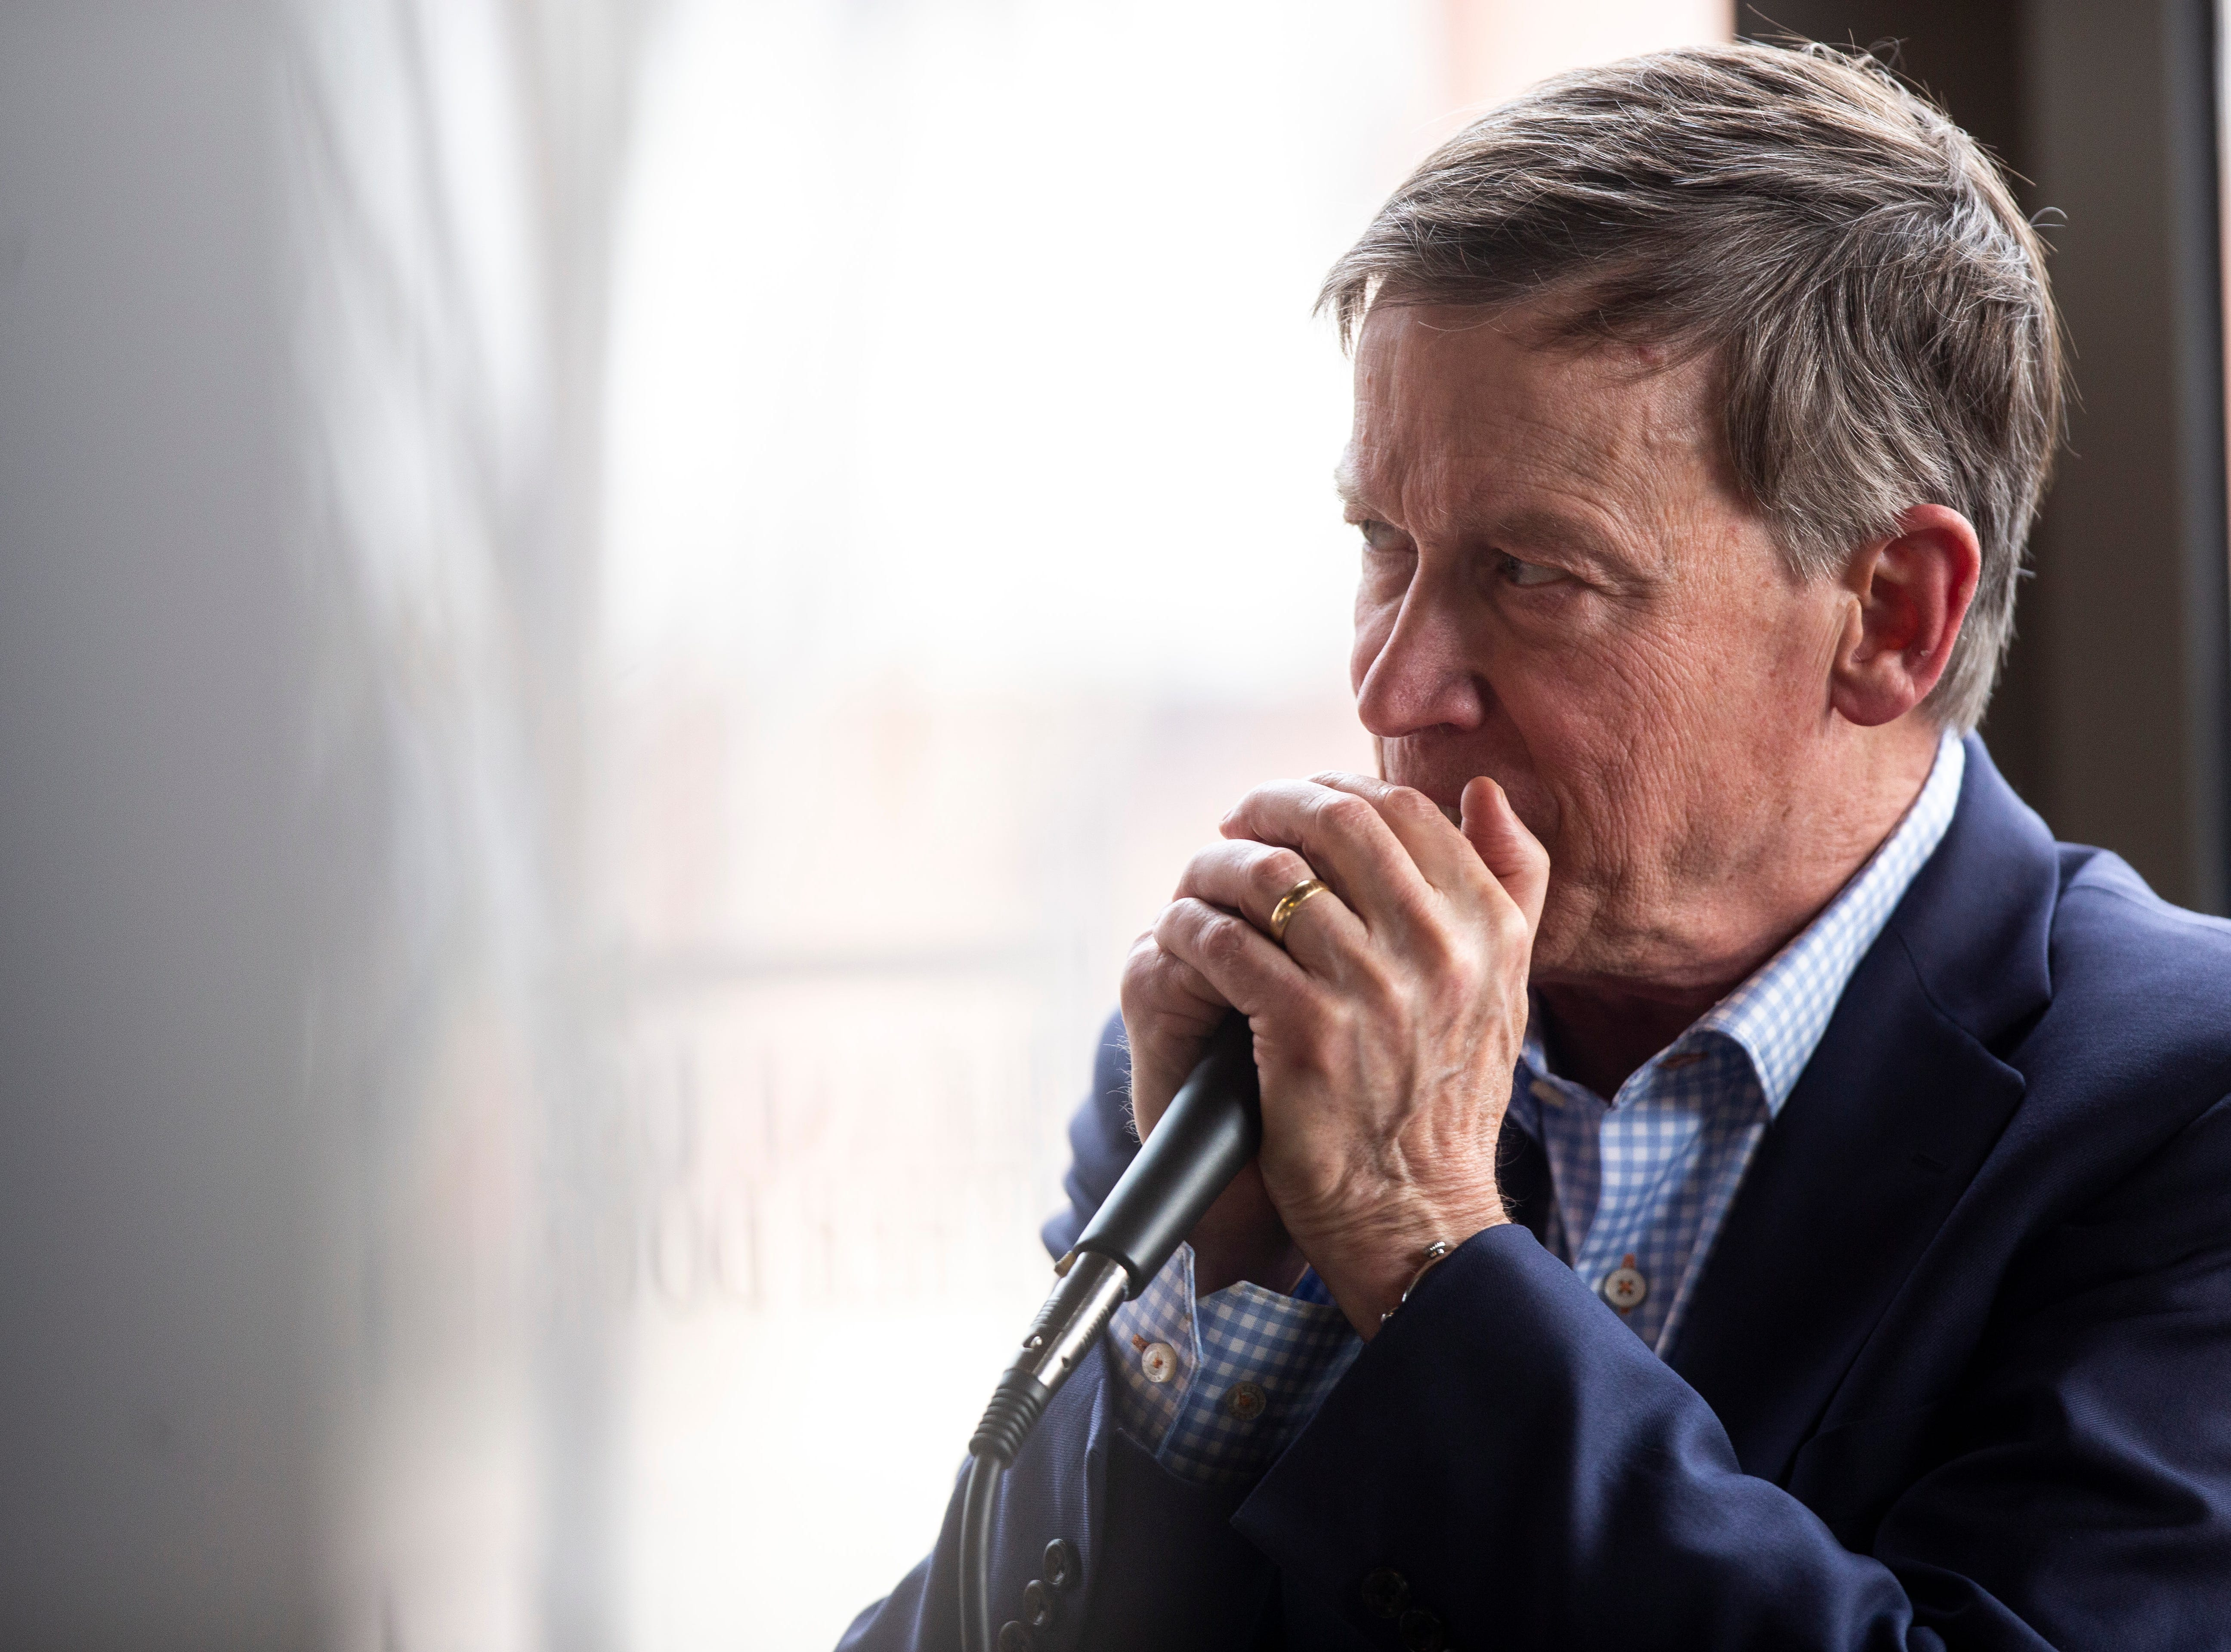 Democratic presidential candidate and former Colorado Gov. John Hickenlooper cups his hands around a microphone while speaking during an event on Friday, April 12, 2019, at Backpocket Brewing in Coralville, Iowa.